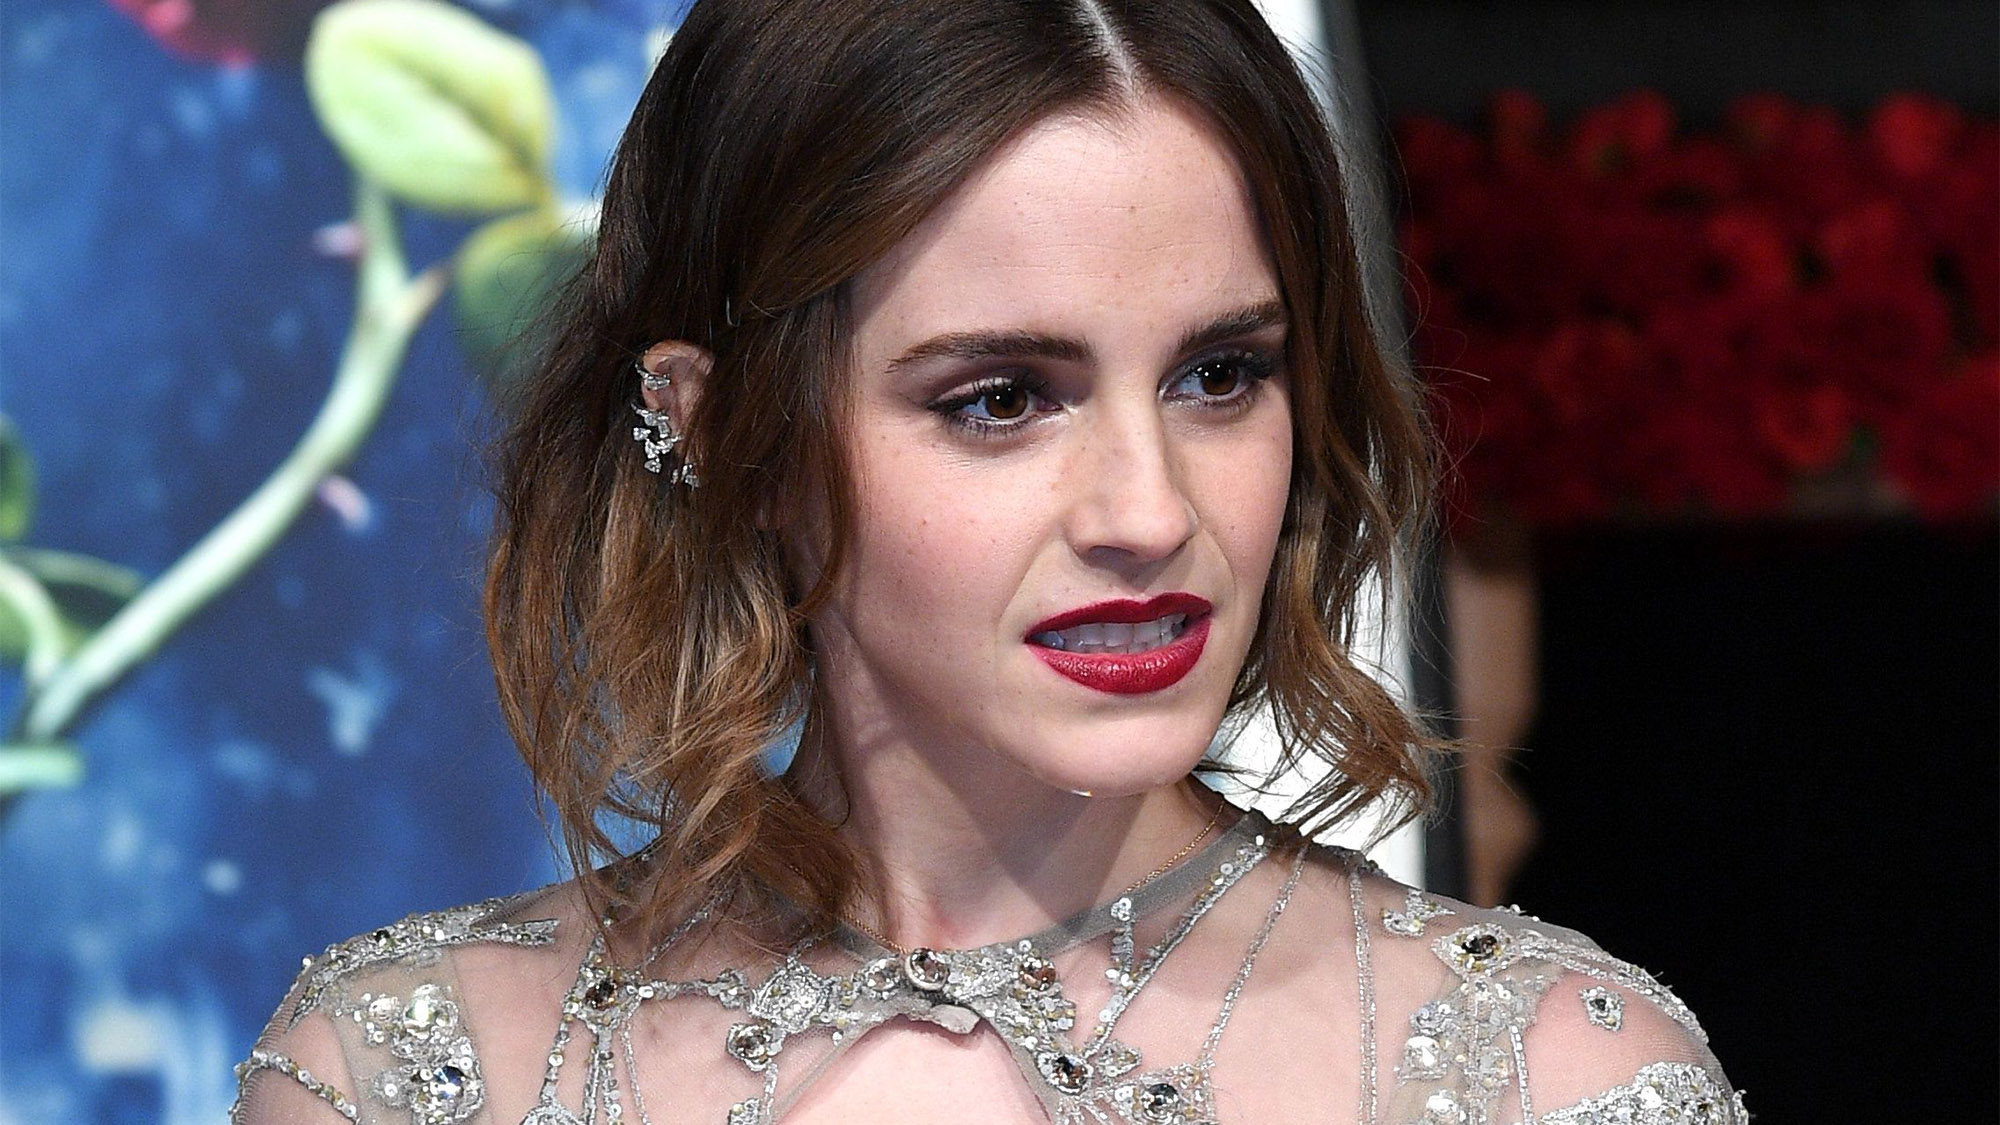 Emma Watson reveals how incredibly dangerous' social media can be